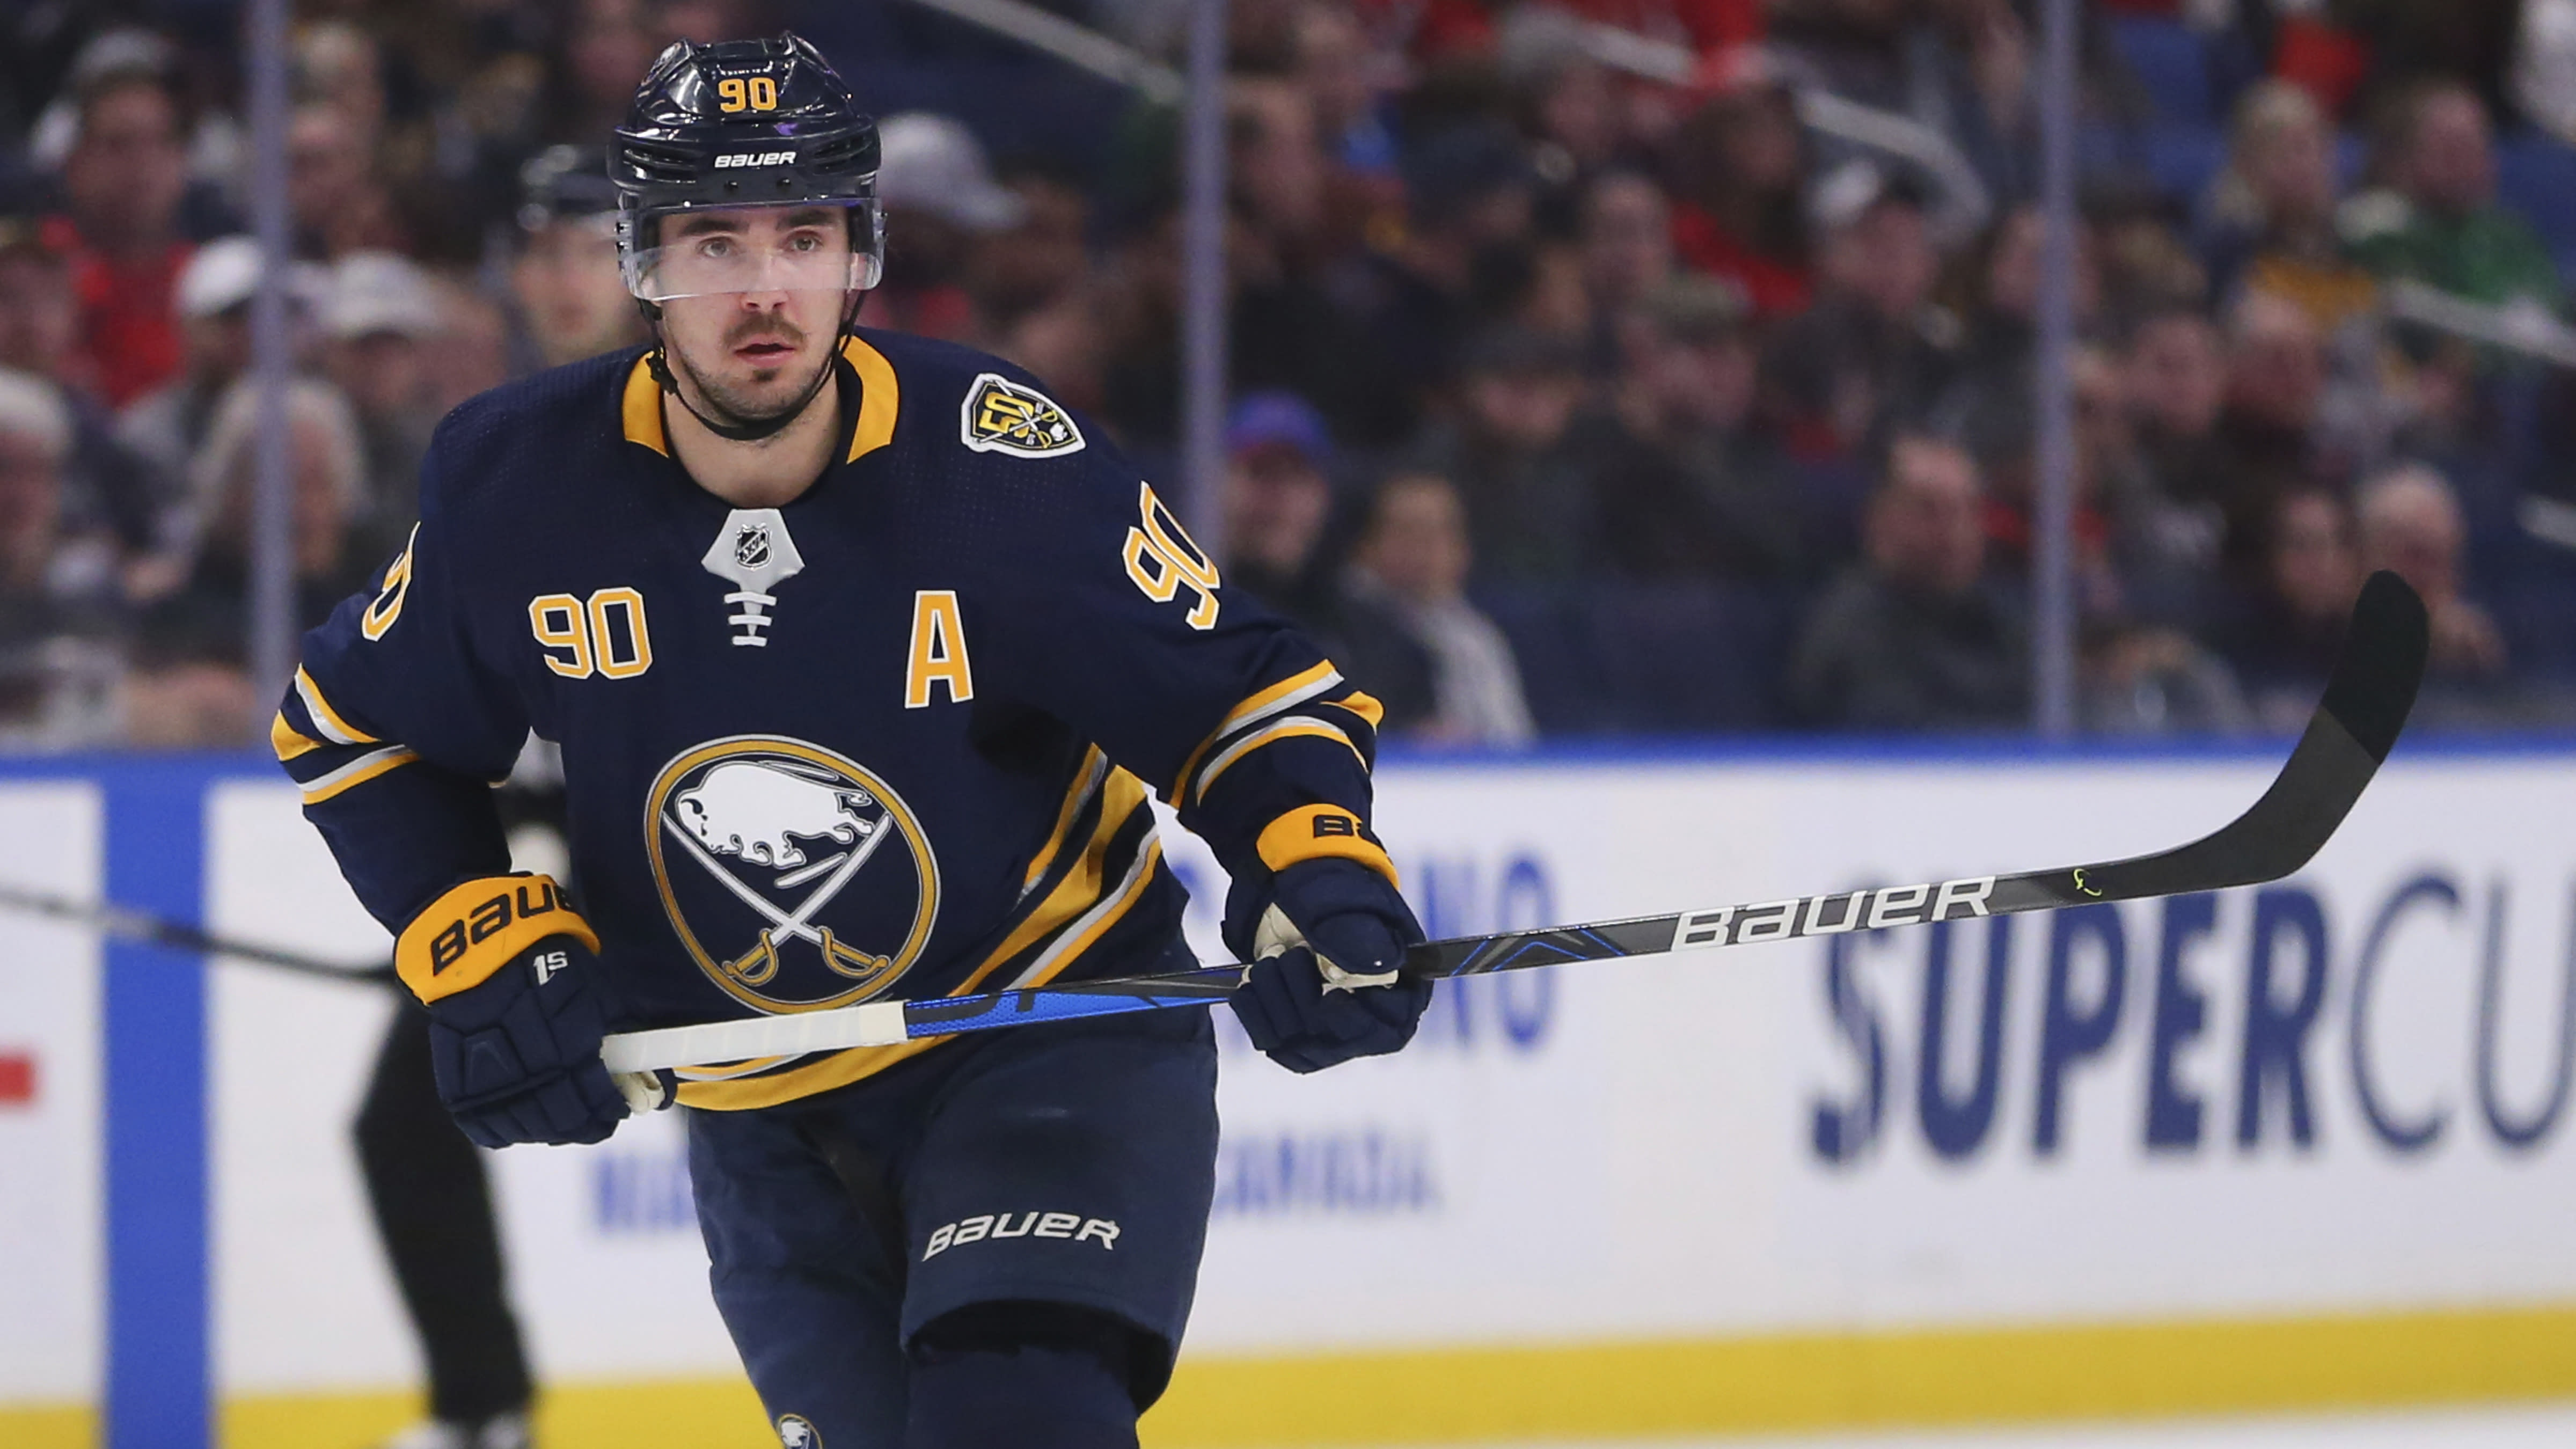 FILE - In this March 9, 2020, file photo, Buffalo Sabres forward Marcus Johansson (90) skates during the first period of an NHL hockey game against the Washington Capitals in Buffalo, N.Y. The Buffalo Sabres acquired veteran center Eric Staal in a trade that sent forward Marcus Johansson to the Minnesota Wild on Wednesday, Sept. 16, 2020. (AP Photo/Jeffrey T. Barnes, File)